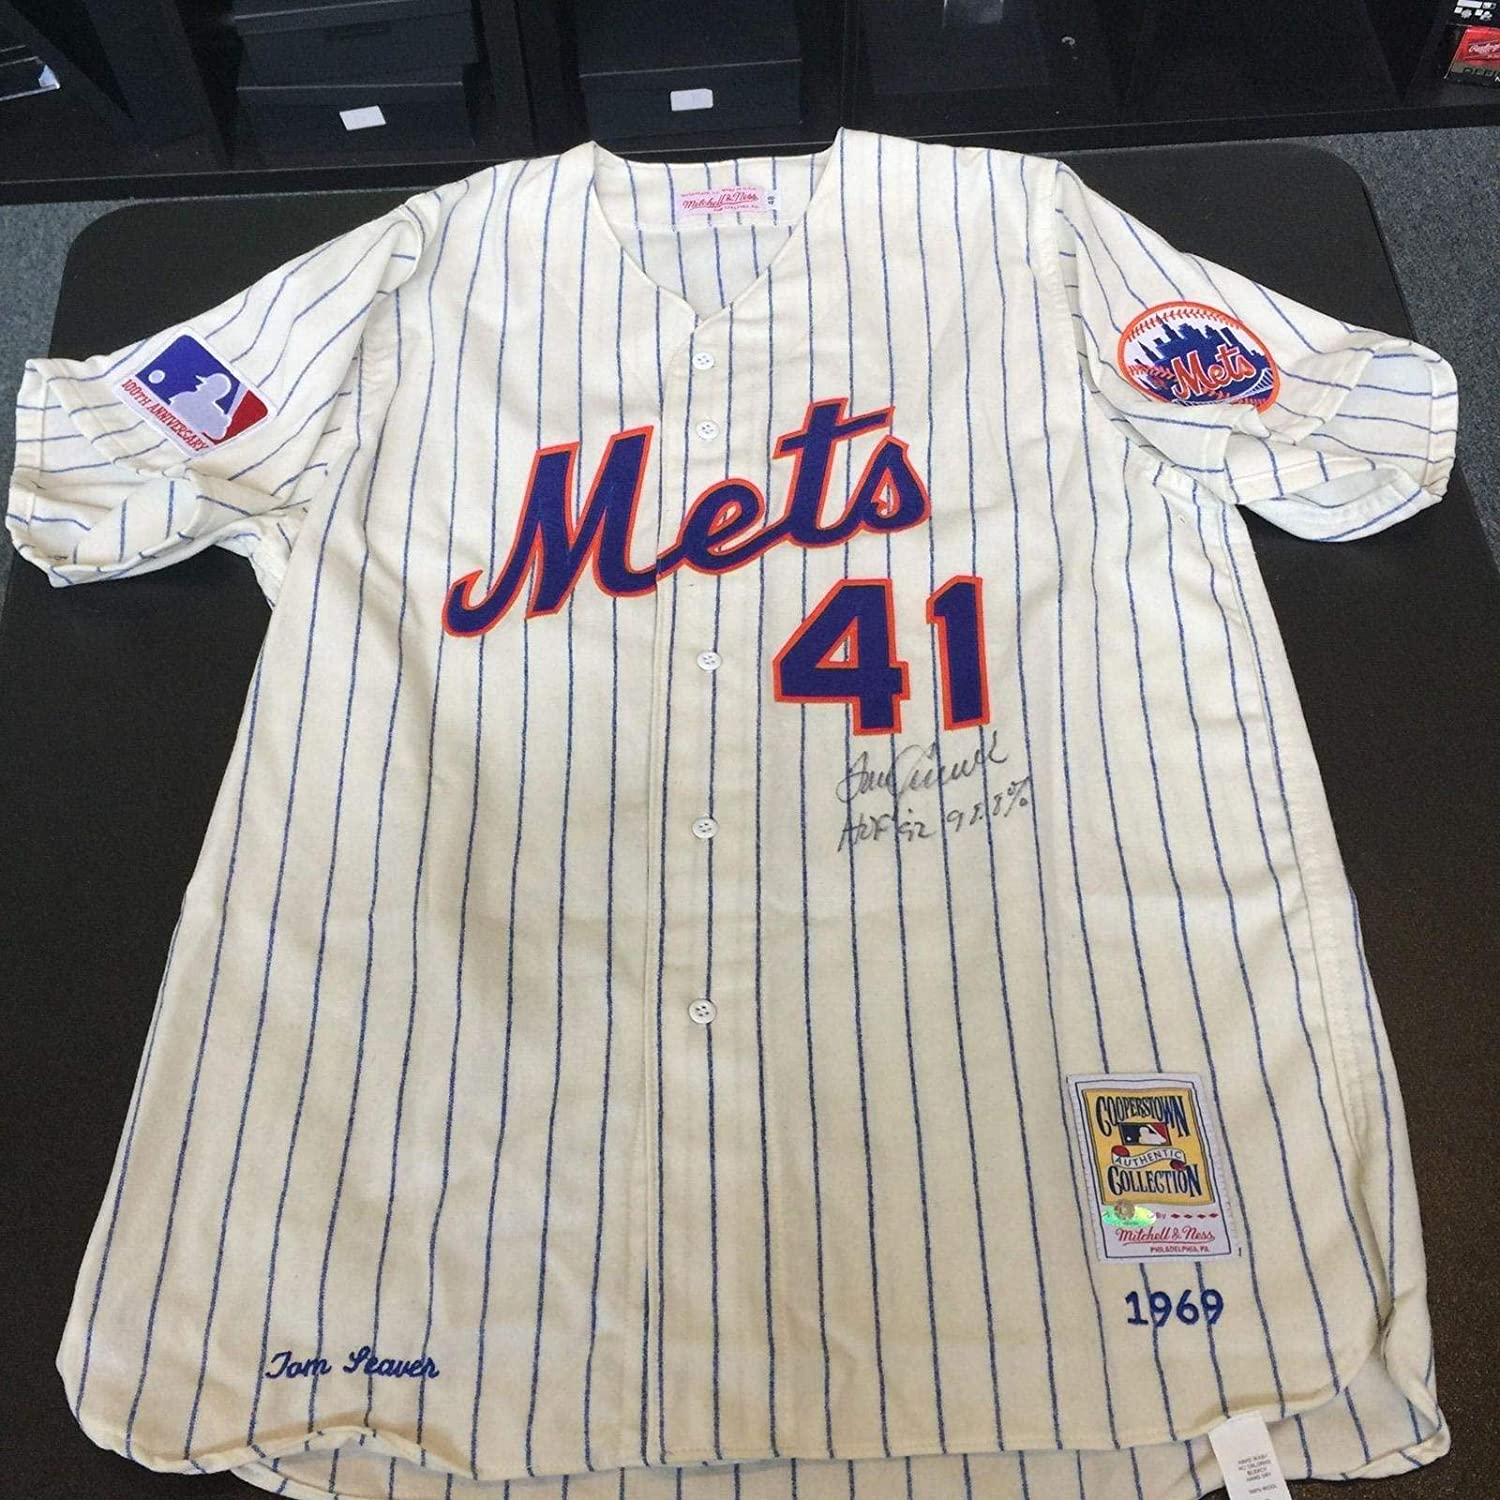 new arrival 702c1 4707a Tom Seaver Autographed Jersey - Beautiful HOF 92 98 8% Votes ...